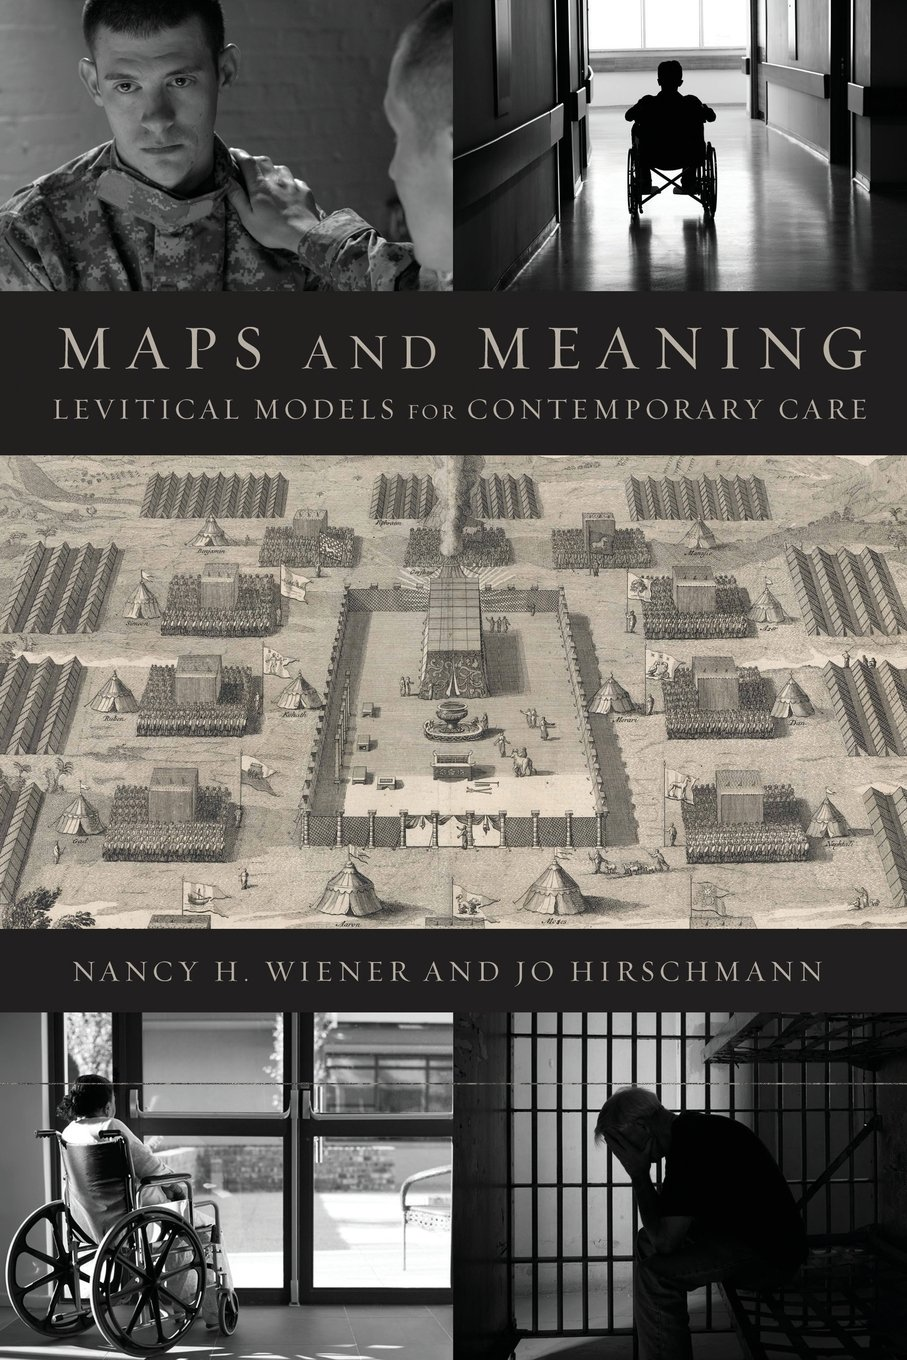 Maps and Meaning: Levitical Models for Contemporary Care pdf